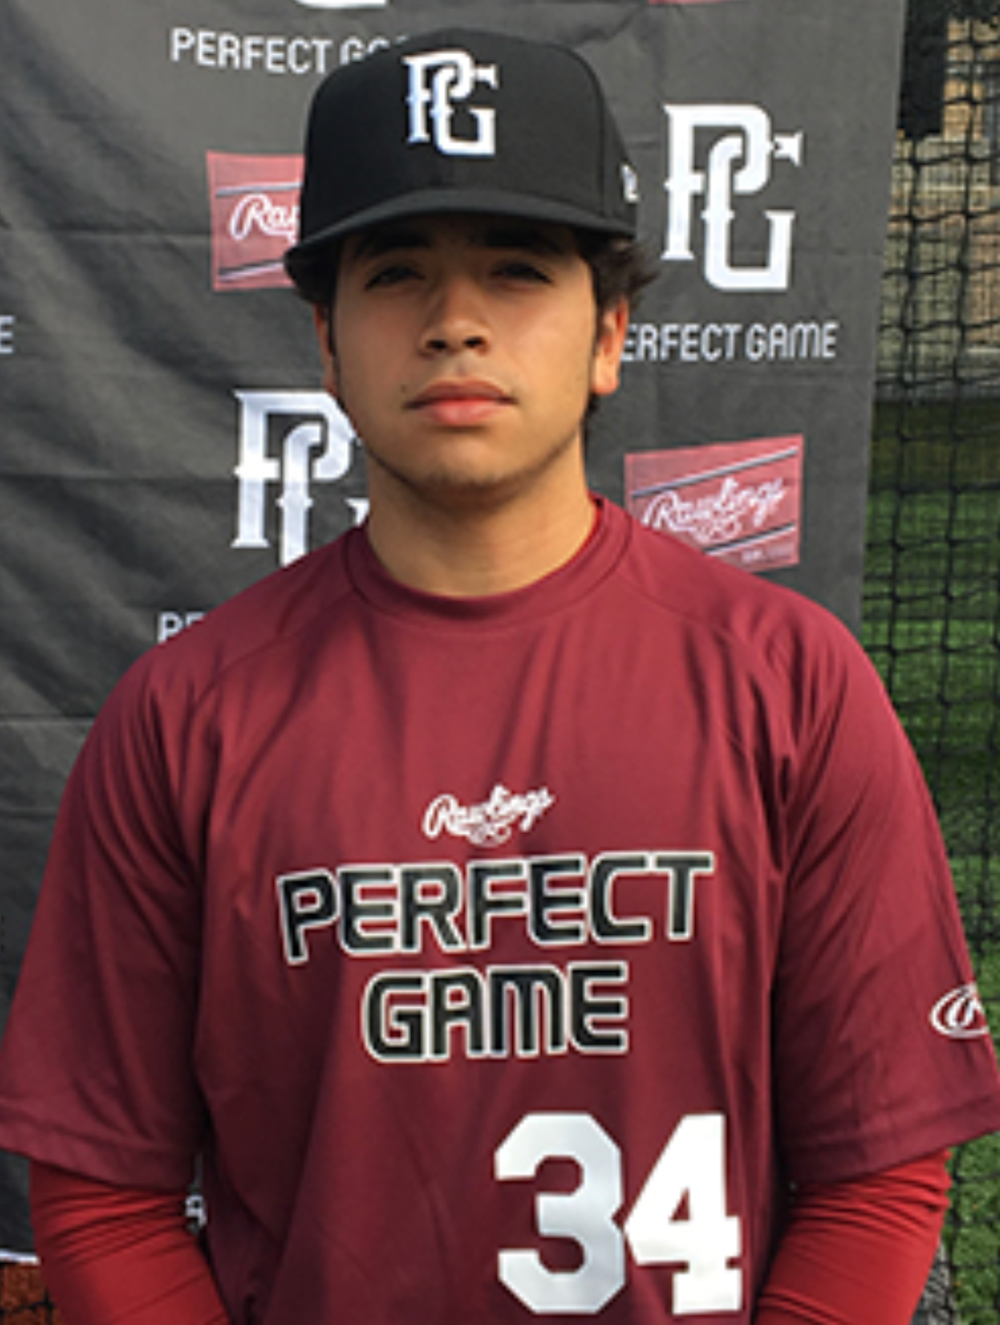 Congrats 4/15/18 - Ruben Roman 2018 on his commitment to D3 FDU. Ruben has been a part of Kings Baseball since the fall of 2016. He currently attends Albertus Magnus HS.